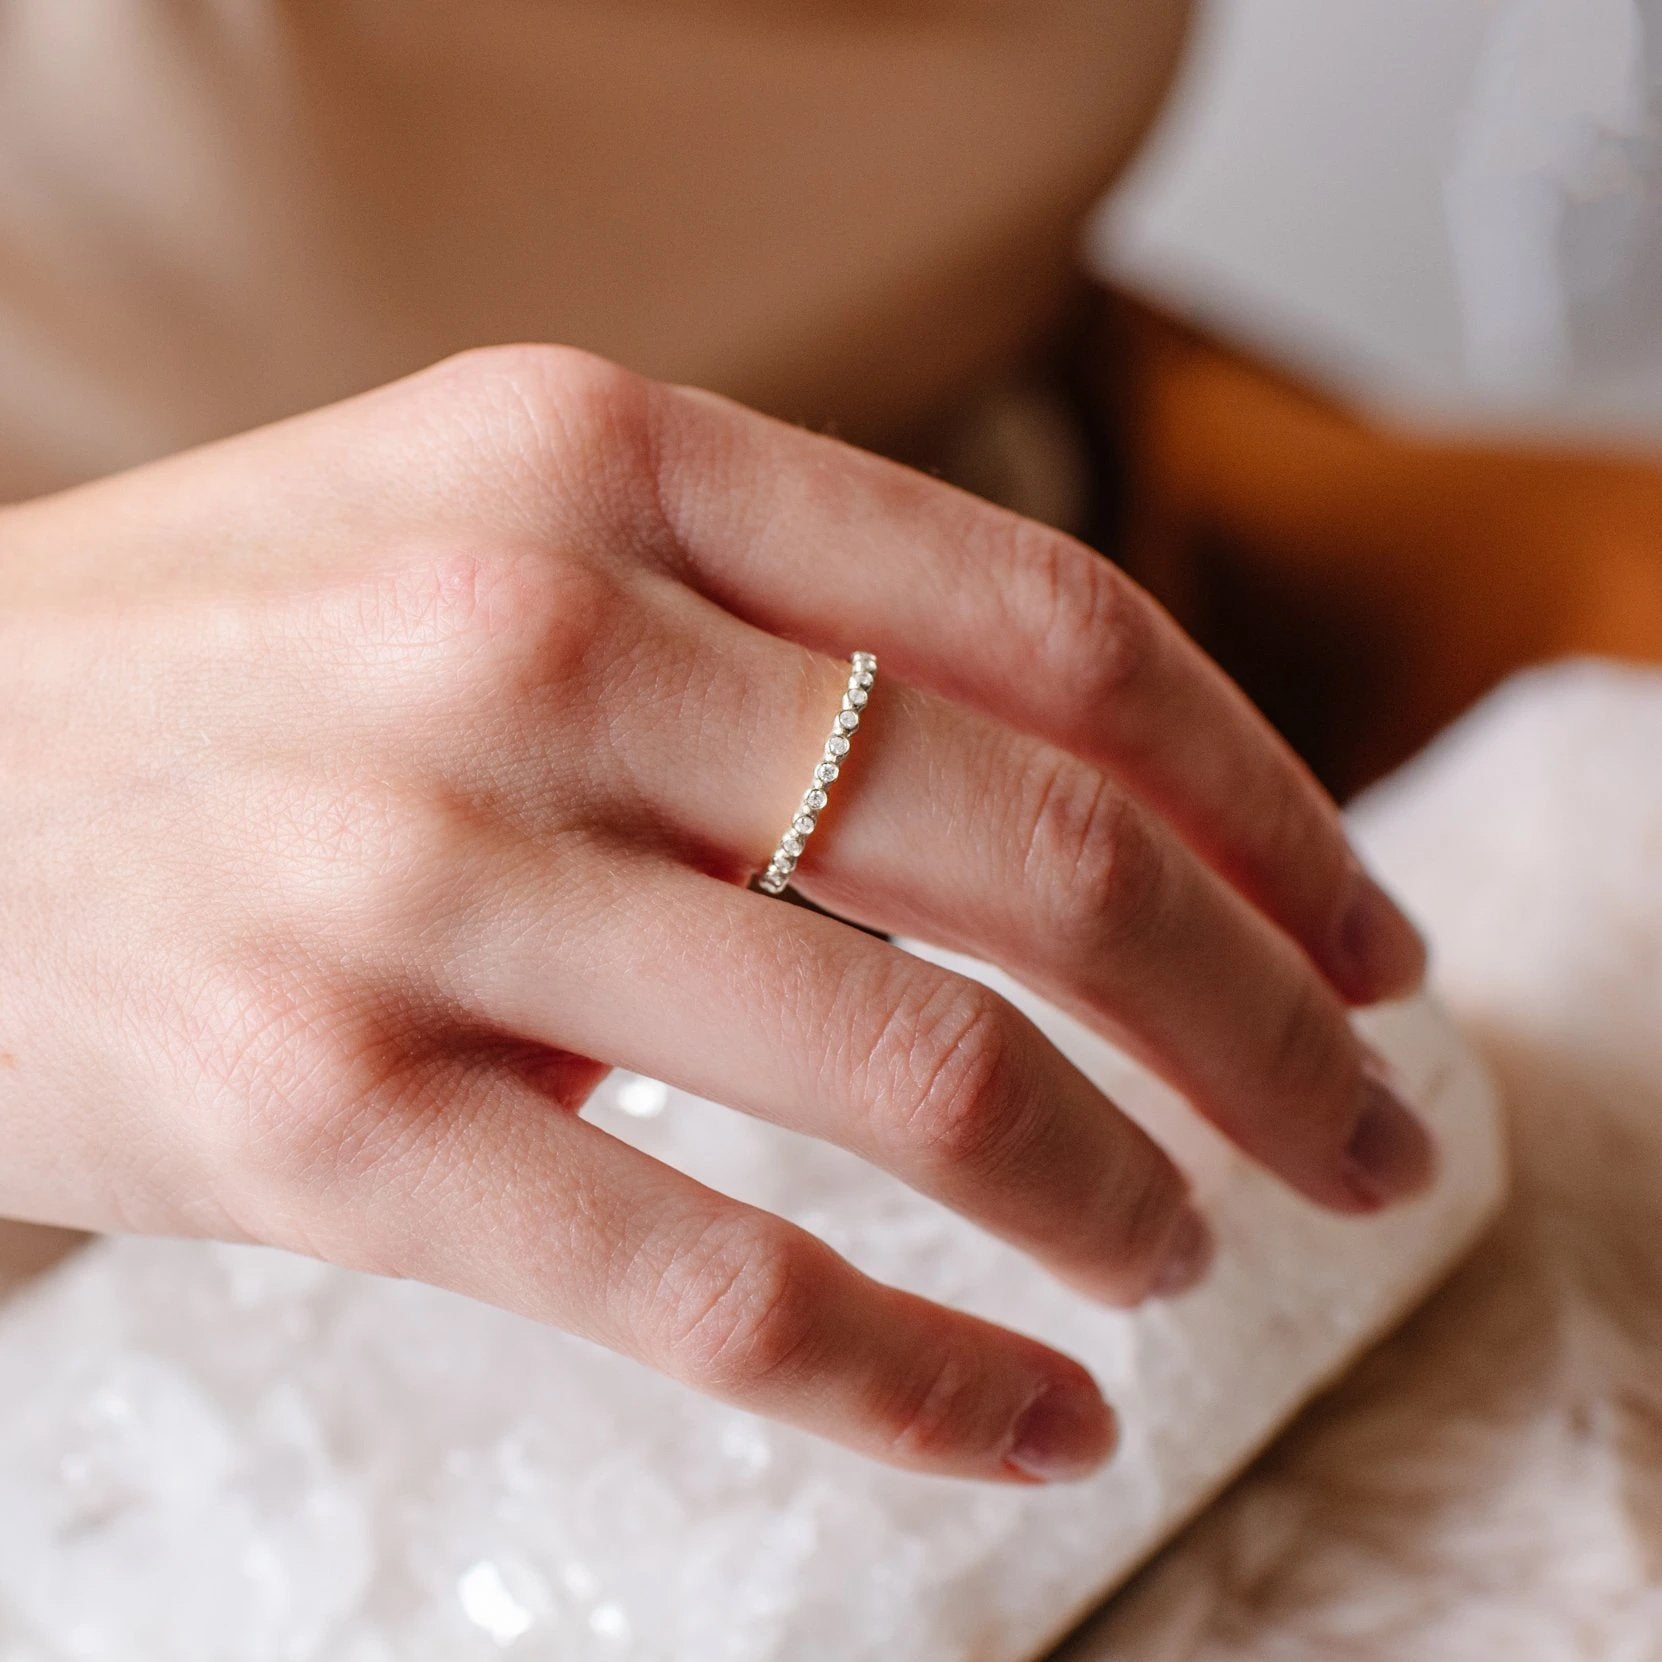 LOVE THIN DISK BAND RING - SILVER - SO PRETTY CARA COTTER